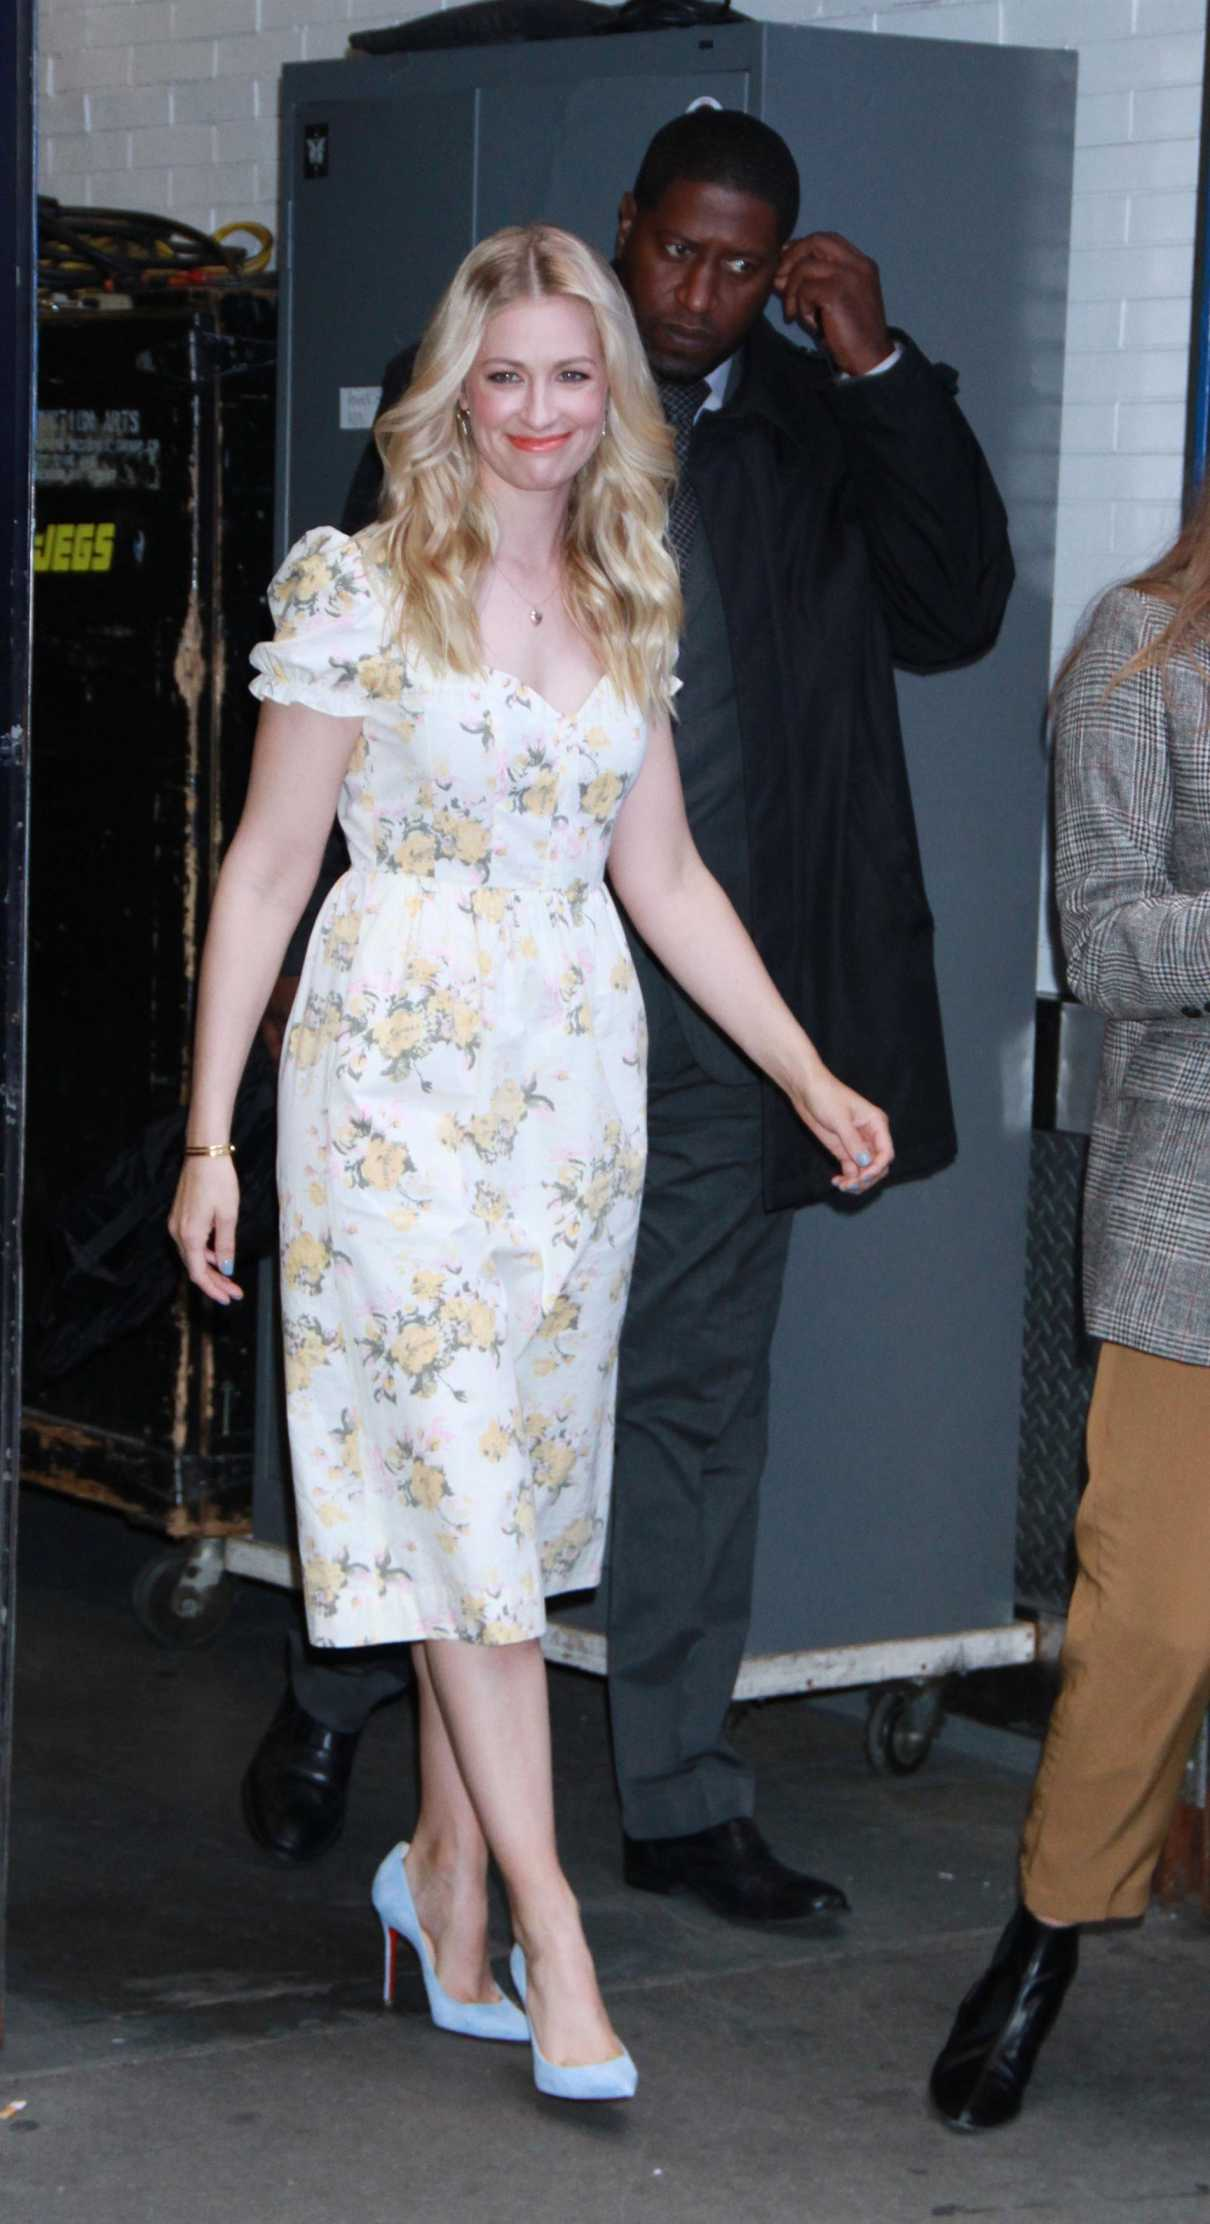 Beth Behrs in a White Floral Dress